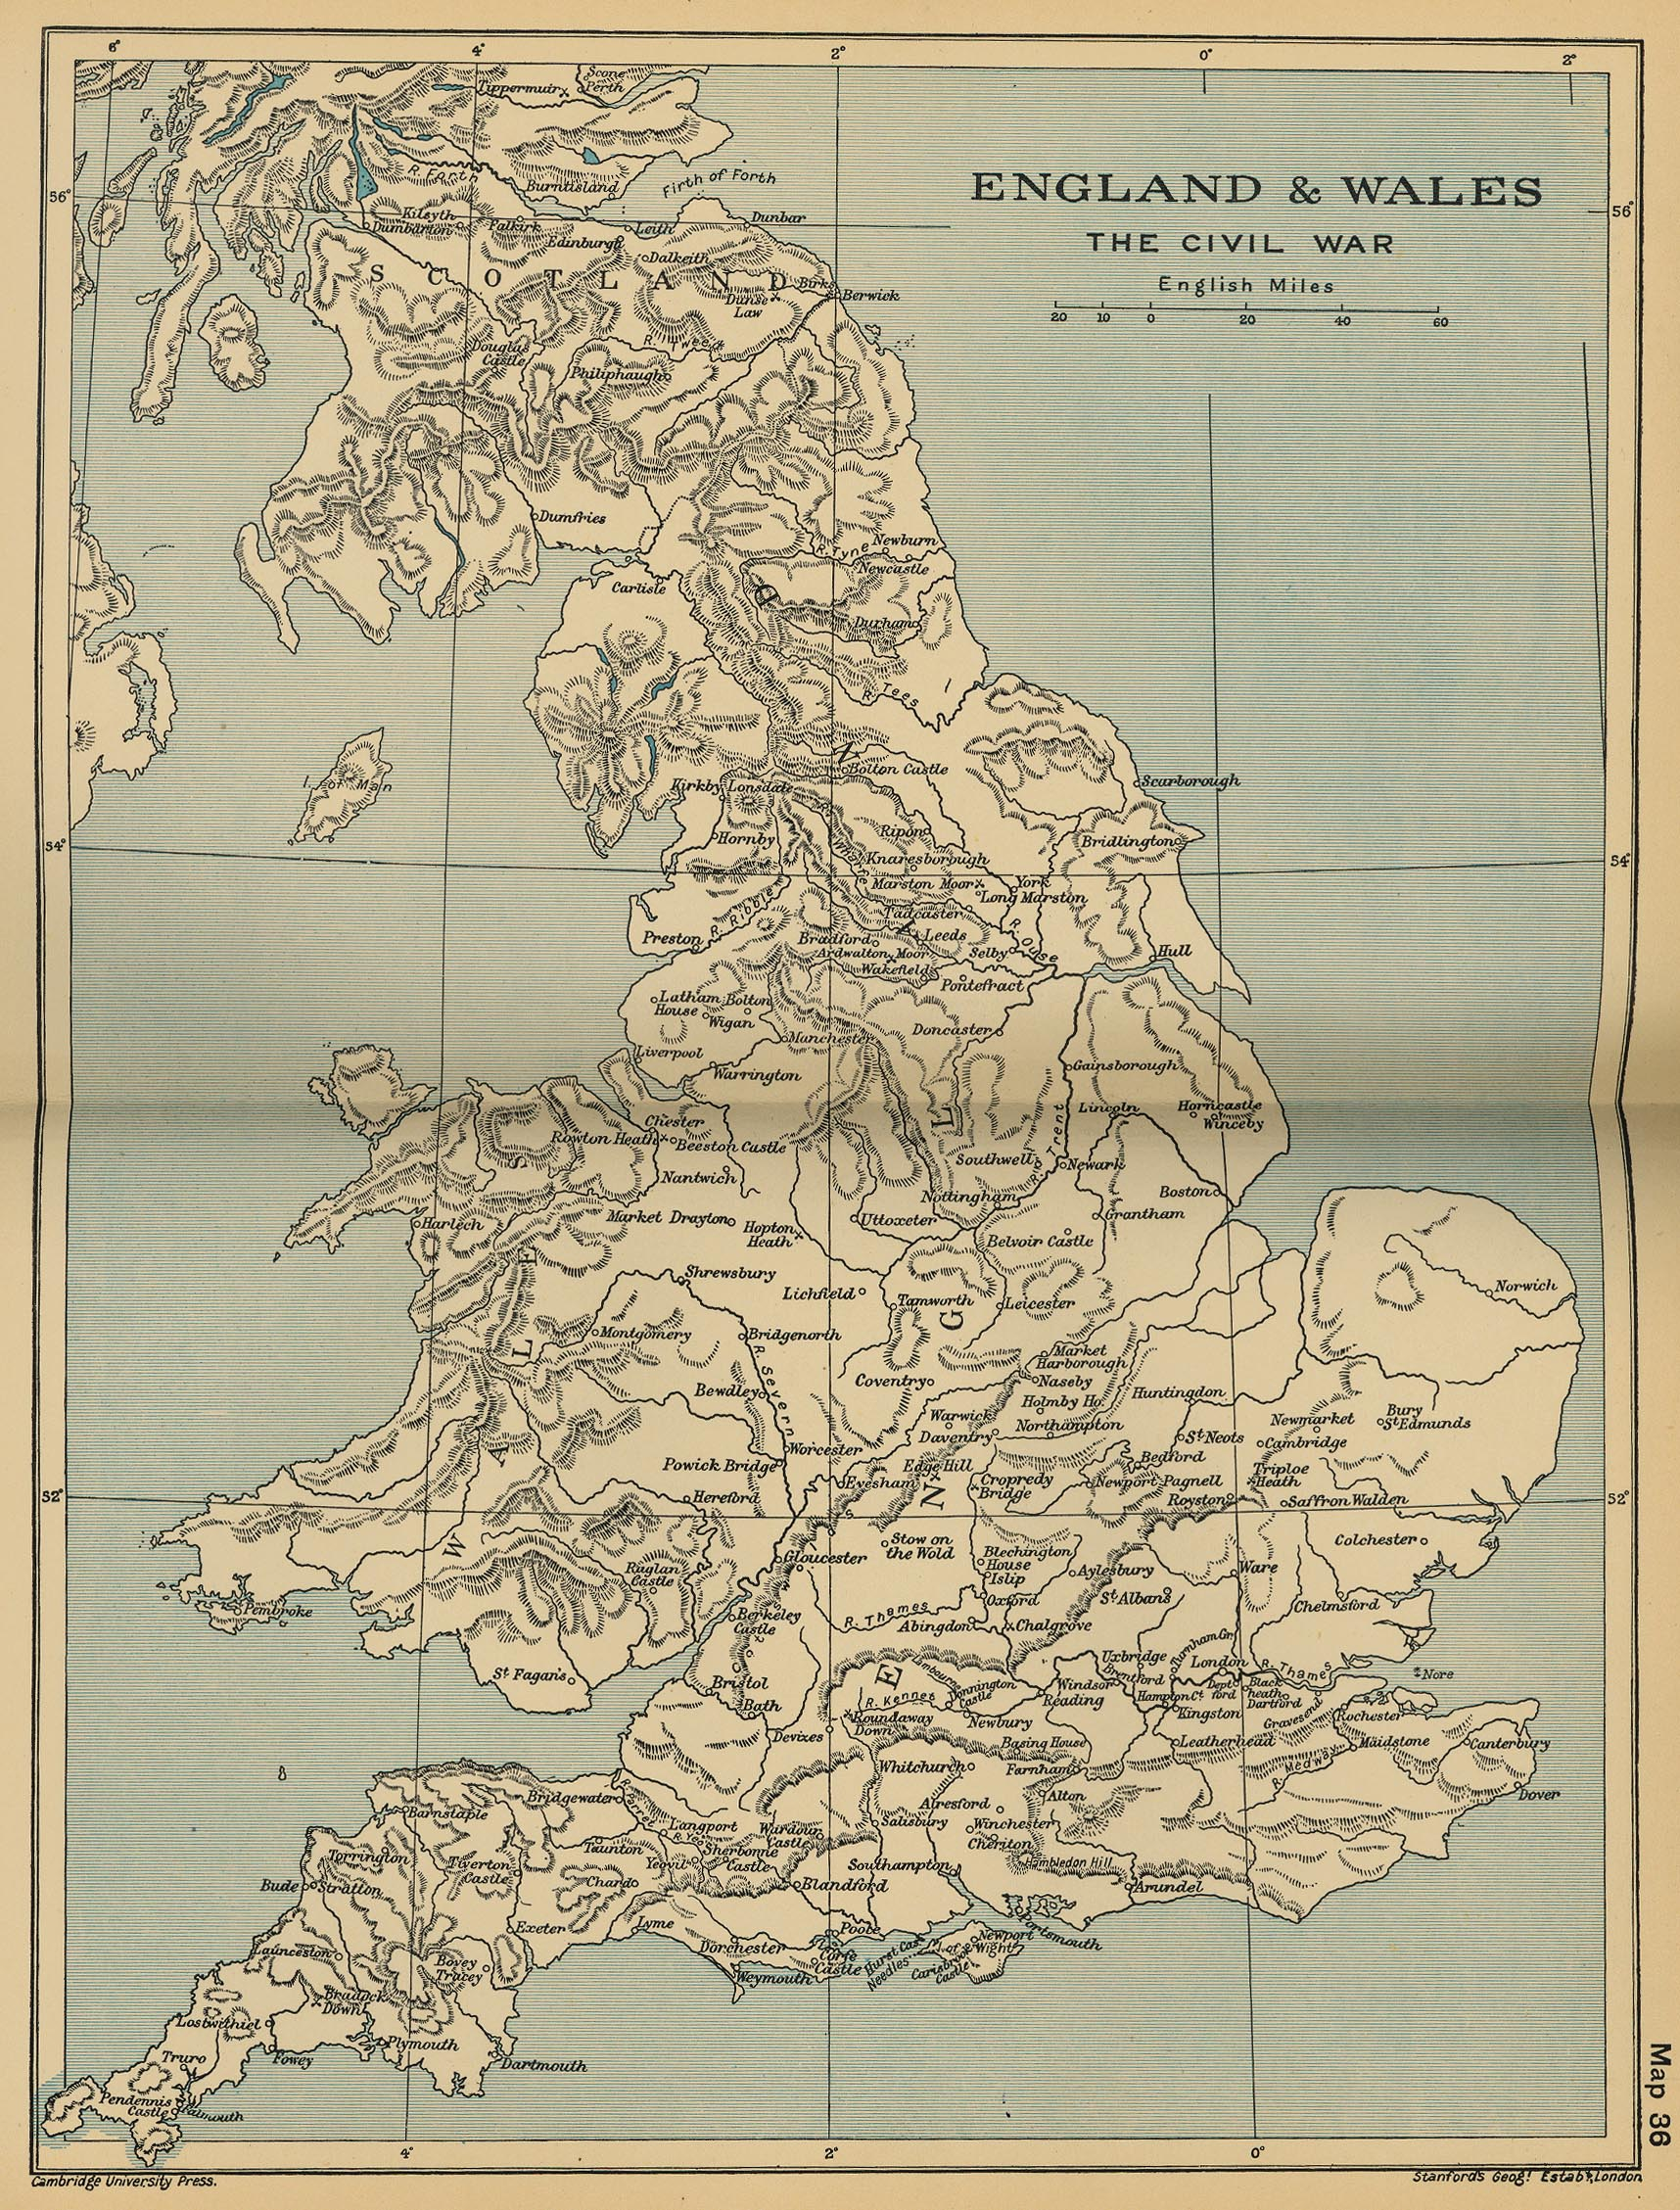 Map of the Civil War, England and Wales 1642  - 1651